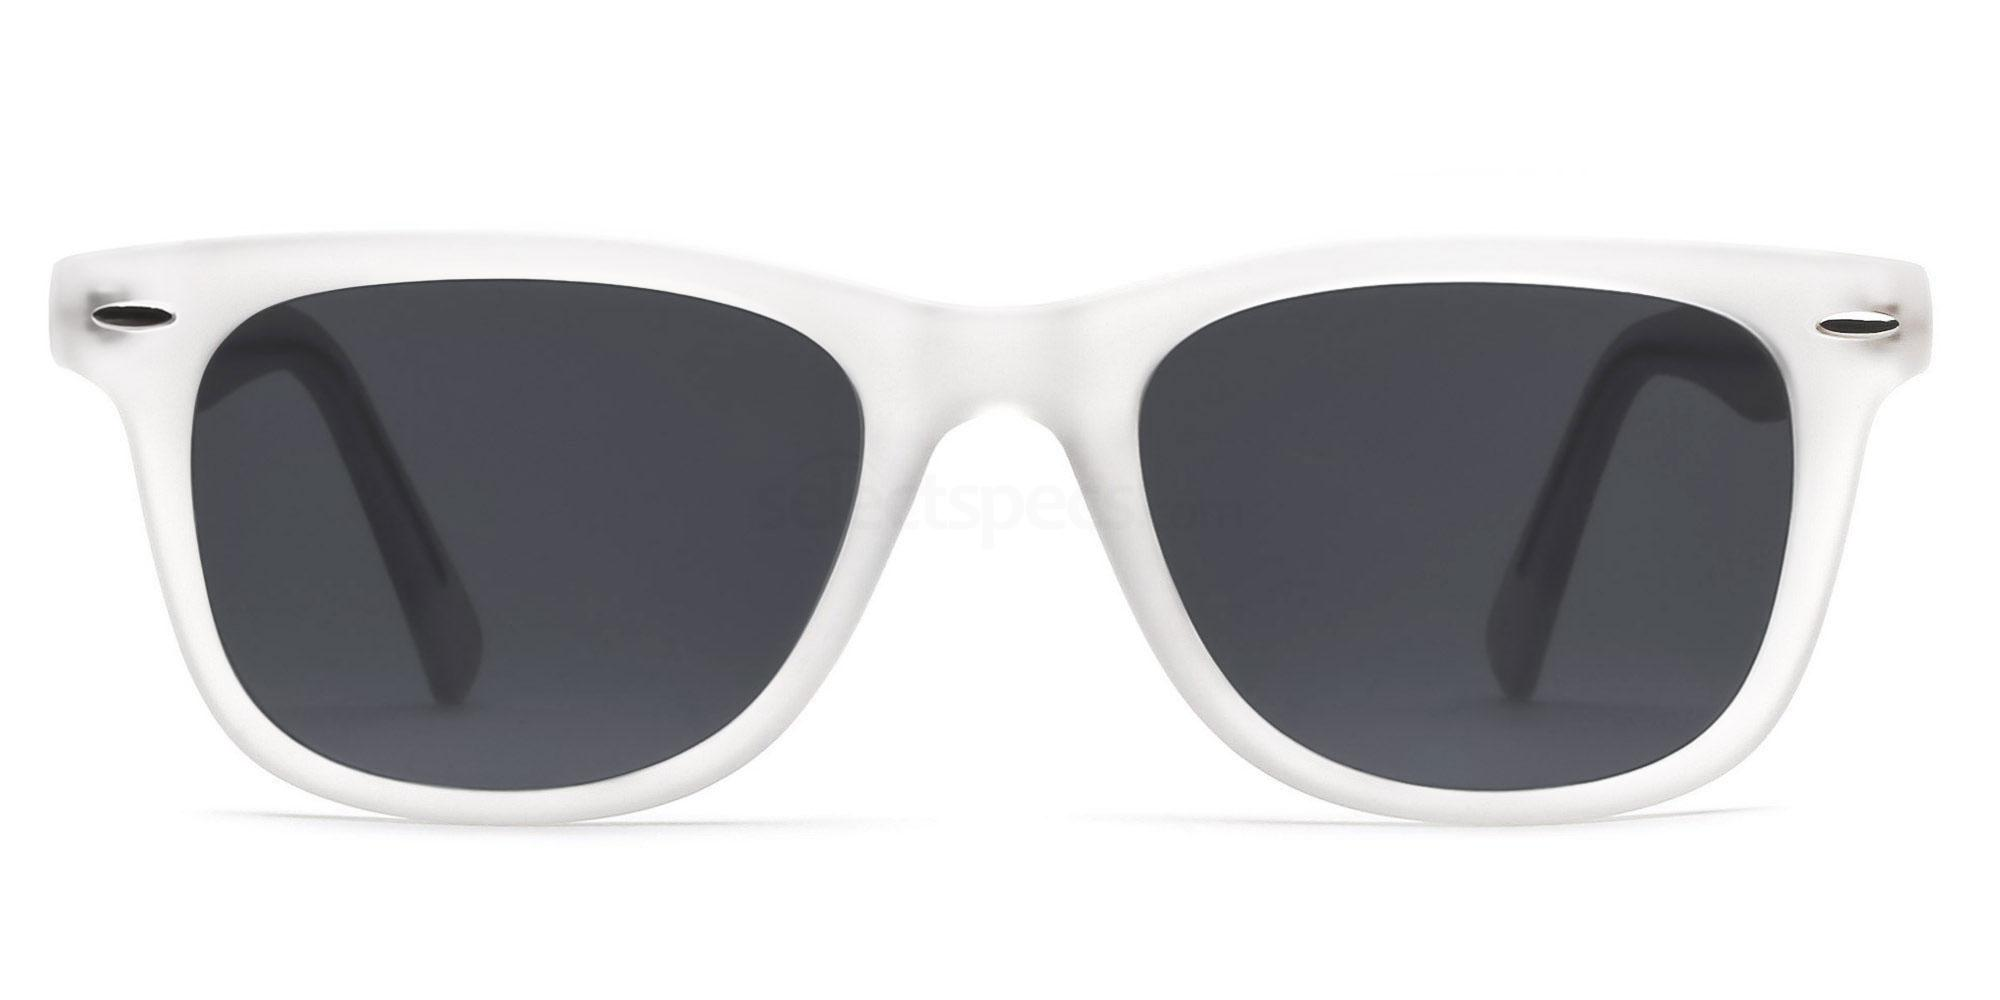 C10 8121 - Clear (Sunglasses) Sunglasses, Savannah